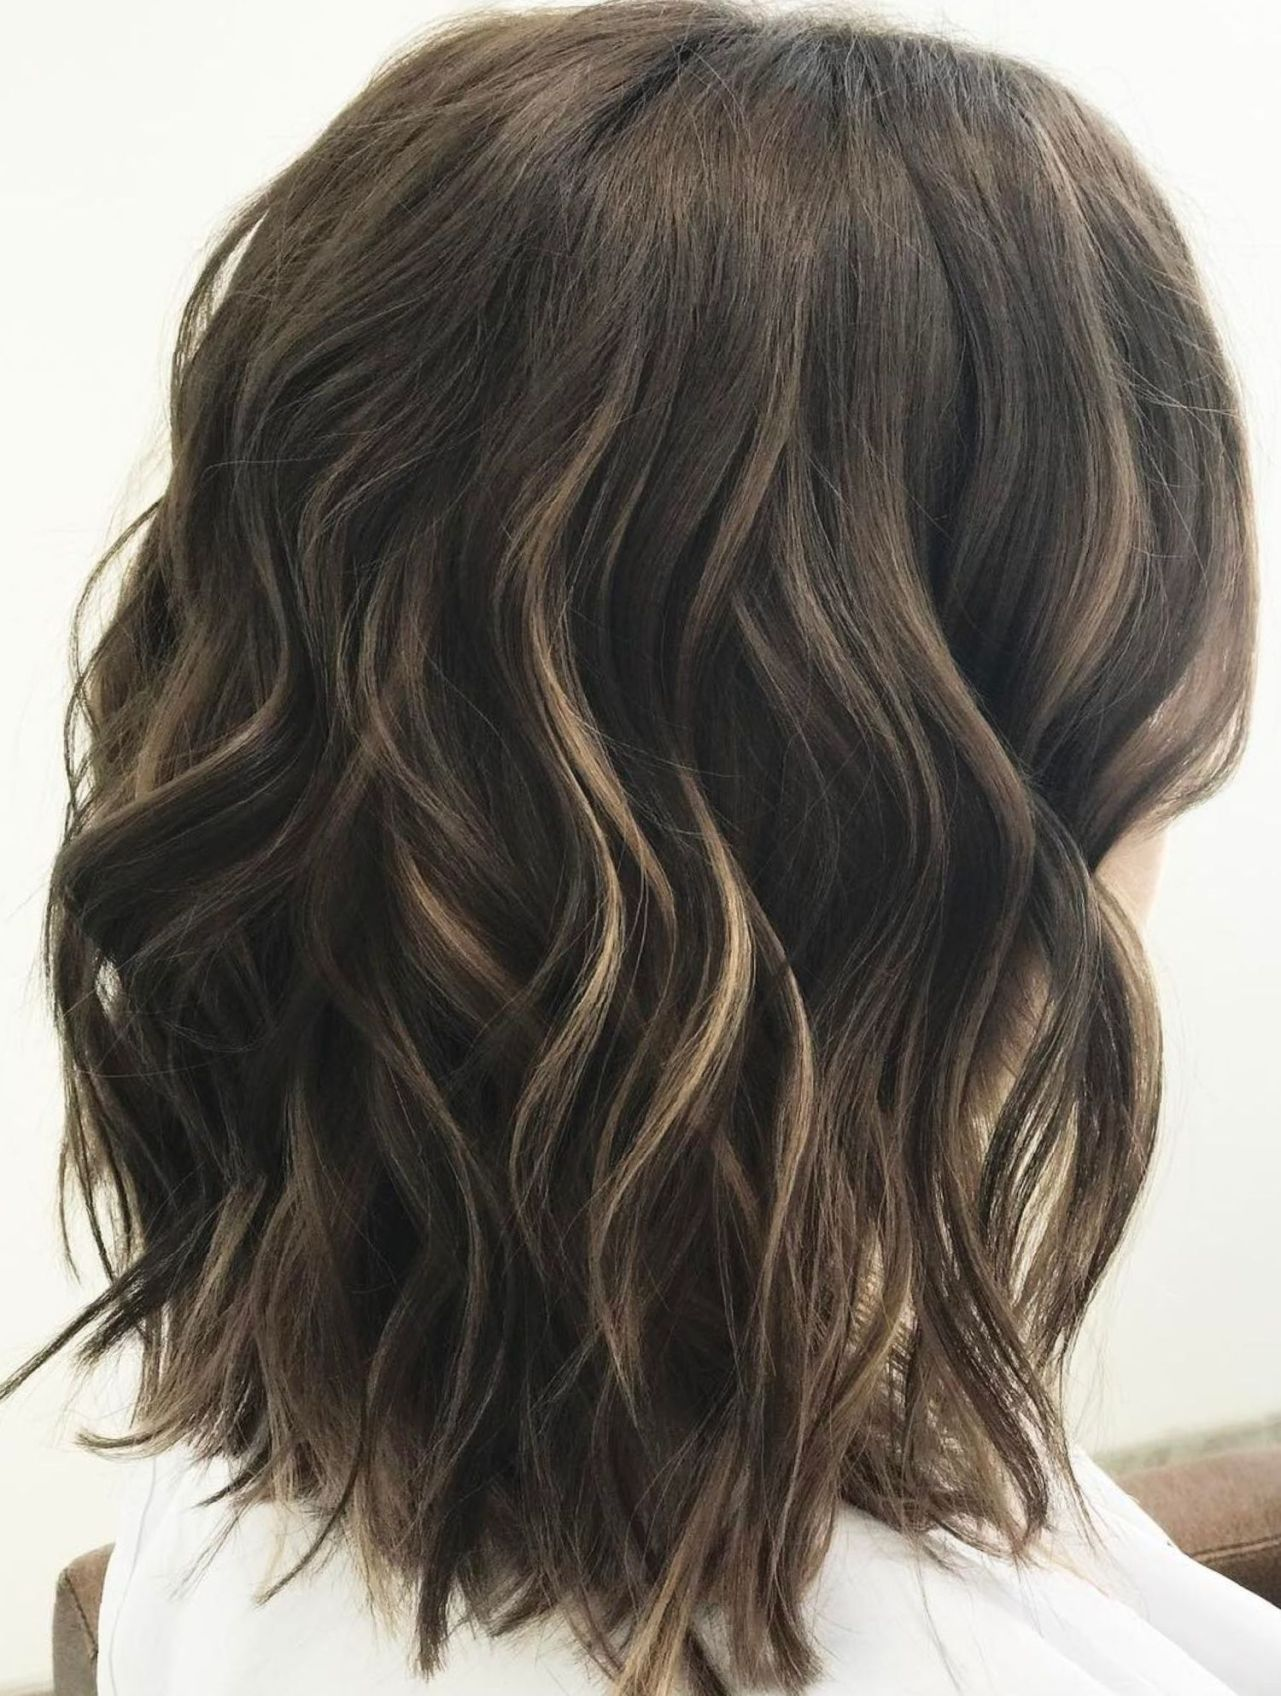 Medium Wavy Brunette Hairstyle  Haircut for thick hair, Curls for